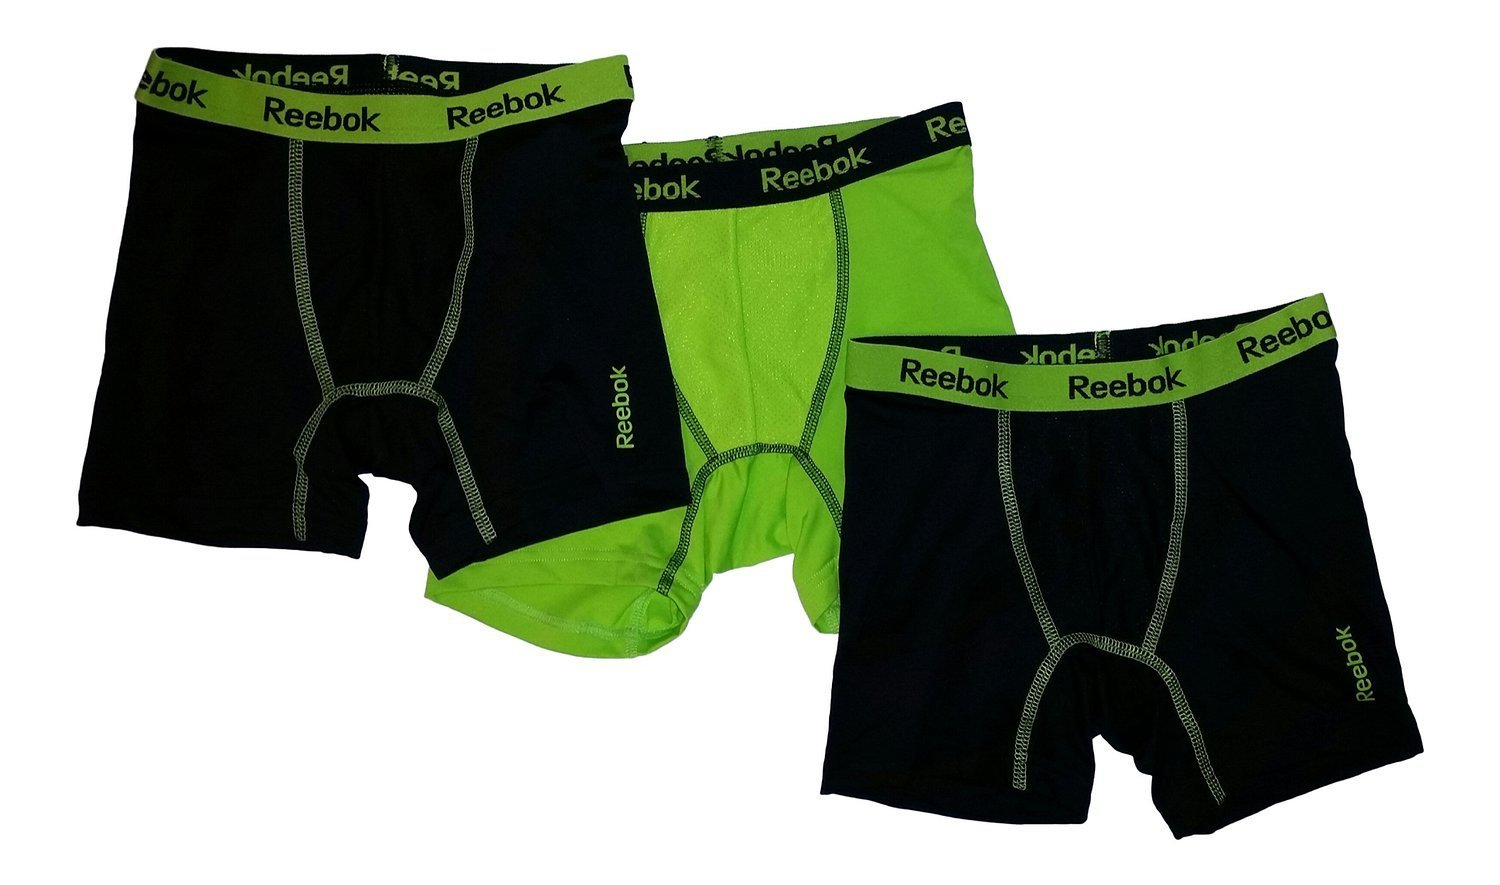 Reebok Boys Performance Boxer Briefs - 3 Pack (Small) by Reebok (Image #1)